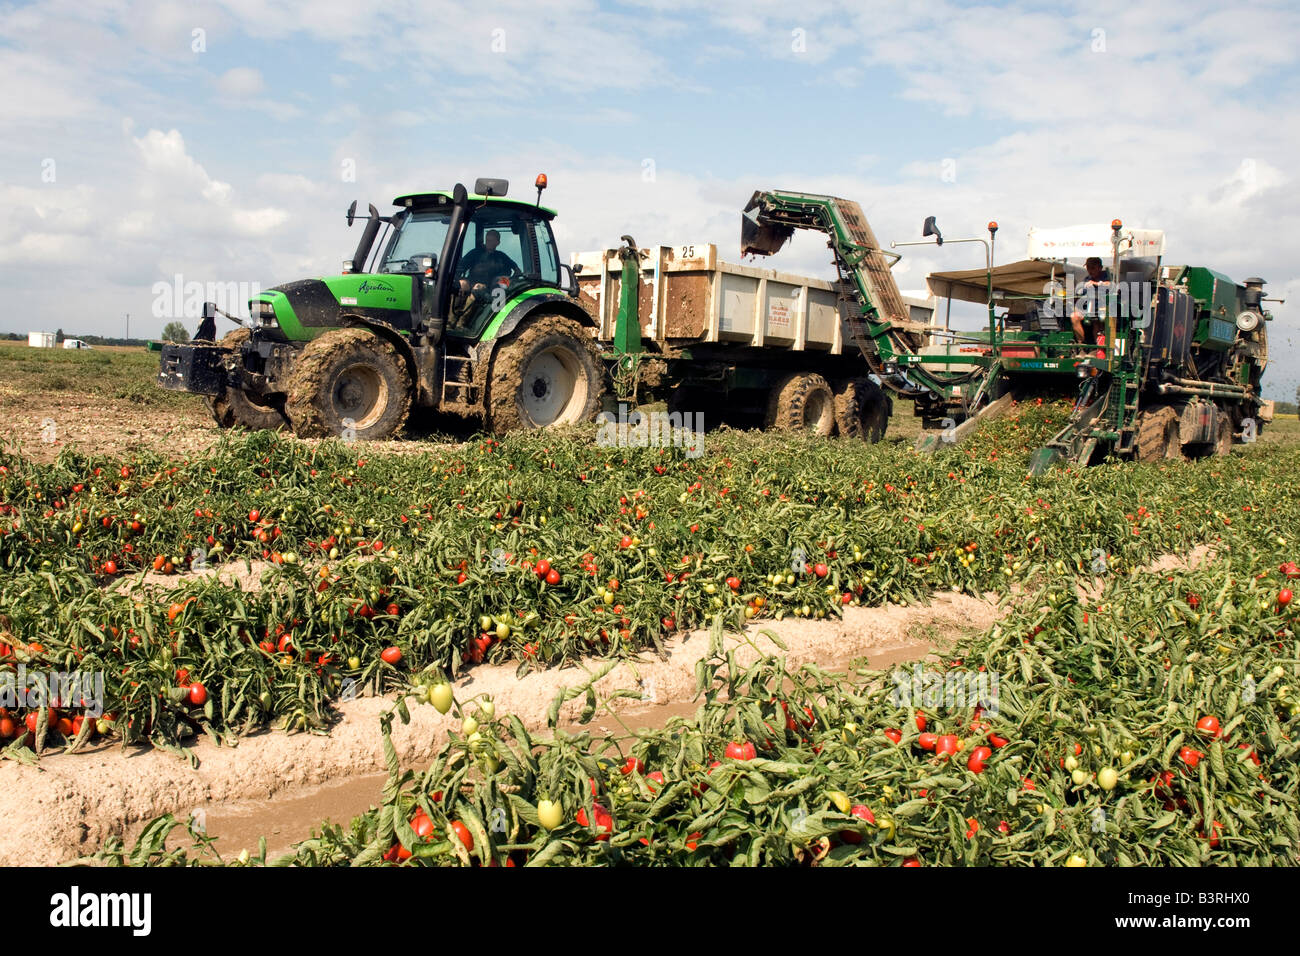 Totally mechanized harvest of tomatoes for factory processing in southwest France - Stock Image